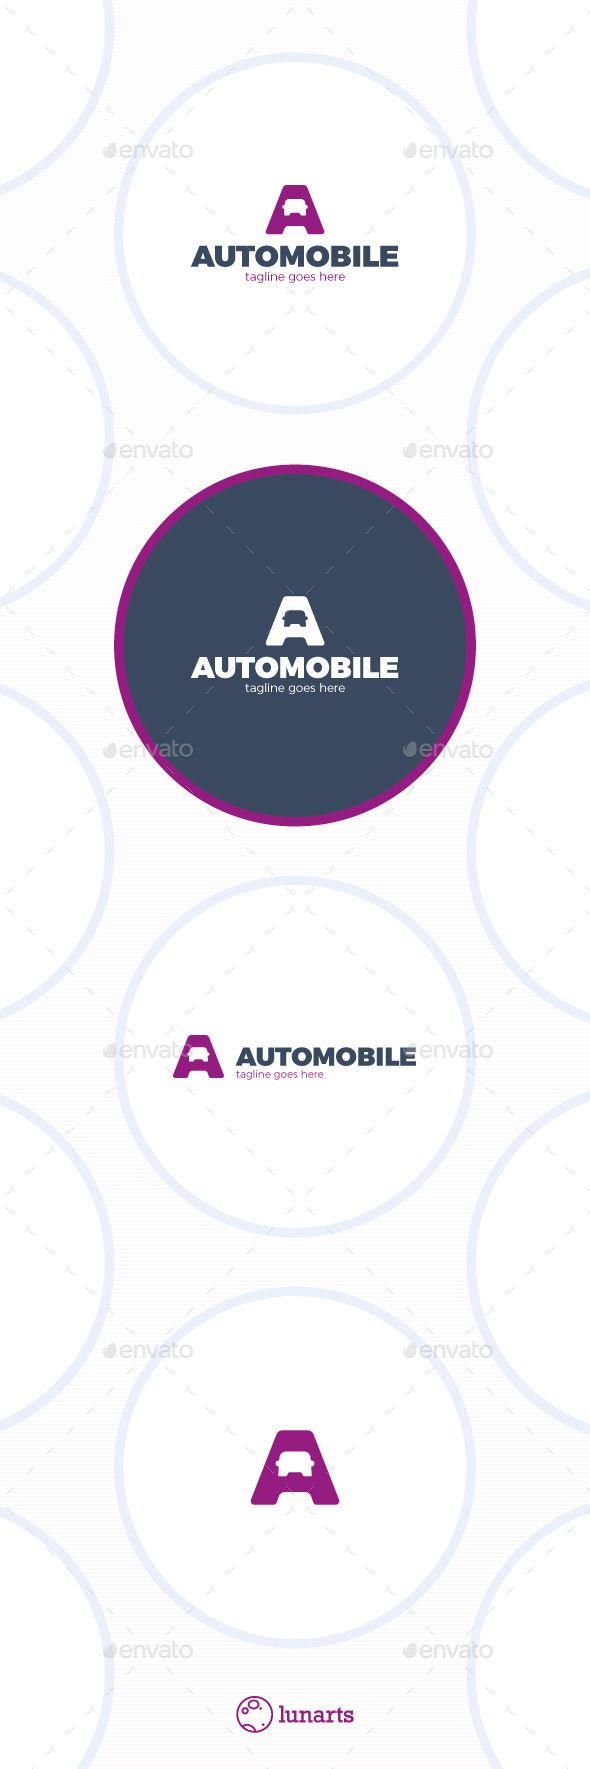 Letter A Auto Car - Logo Design Template Vector #logotype Download it here: http://graphicriver.net/item/letter-a-logo-auto-car/11885381?s_rank=1340?ref=nexion